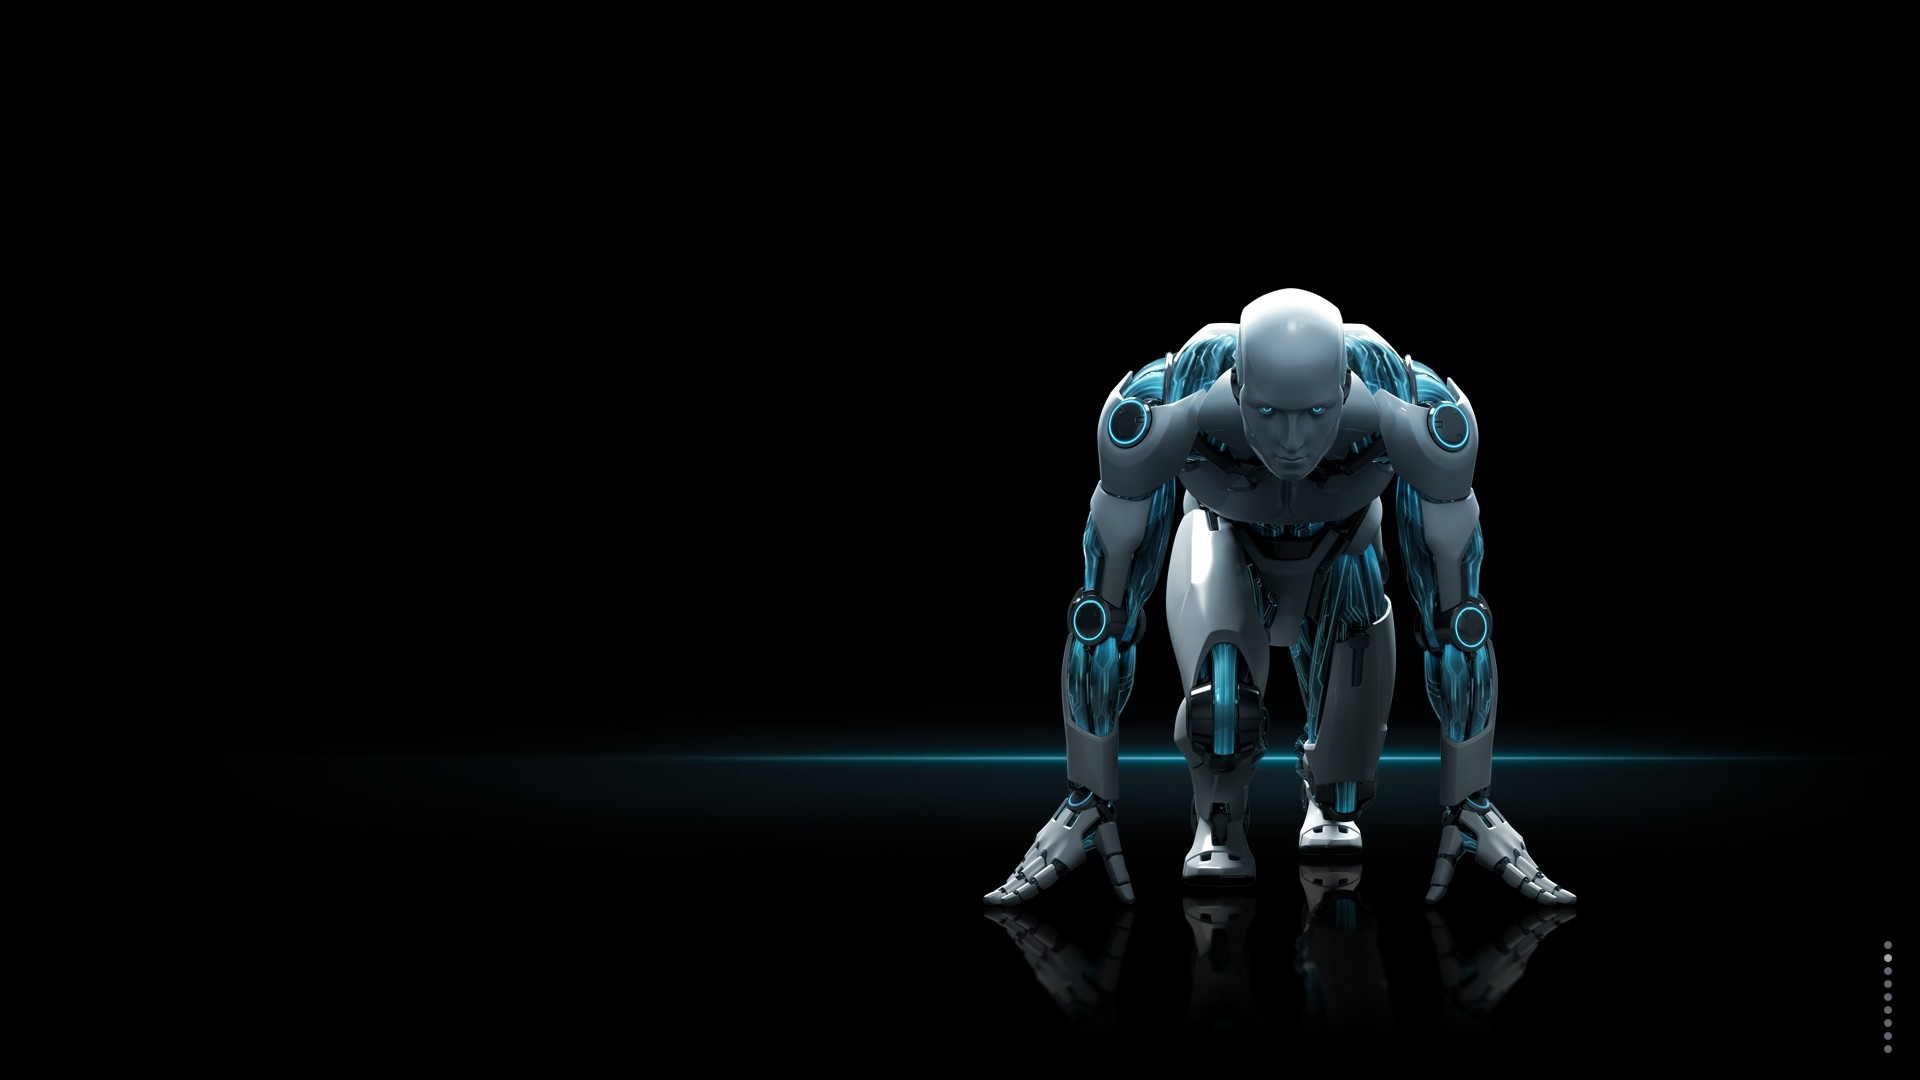 Preview wallpaper nod32, robot, black, white 1920×1080